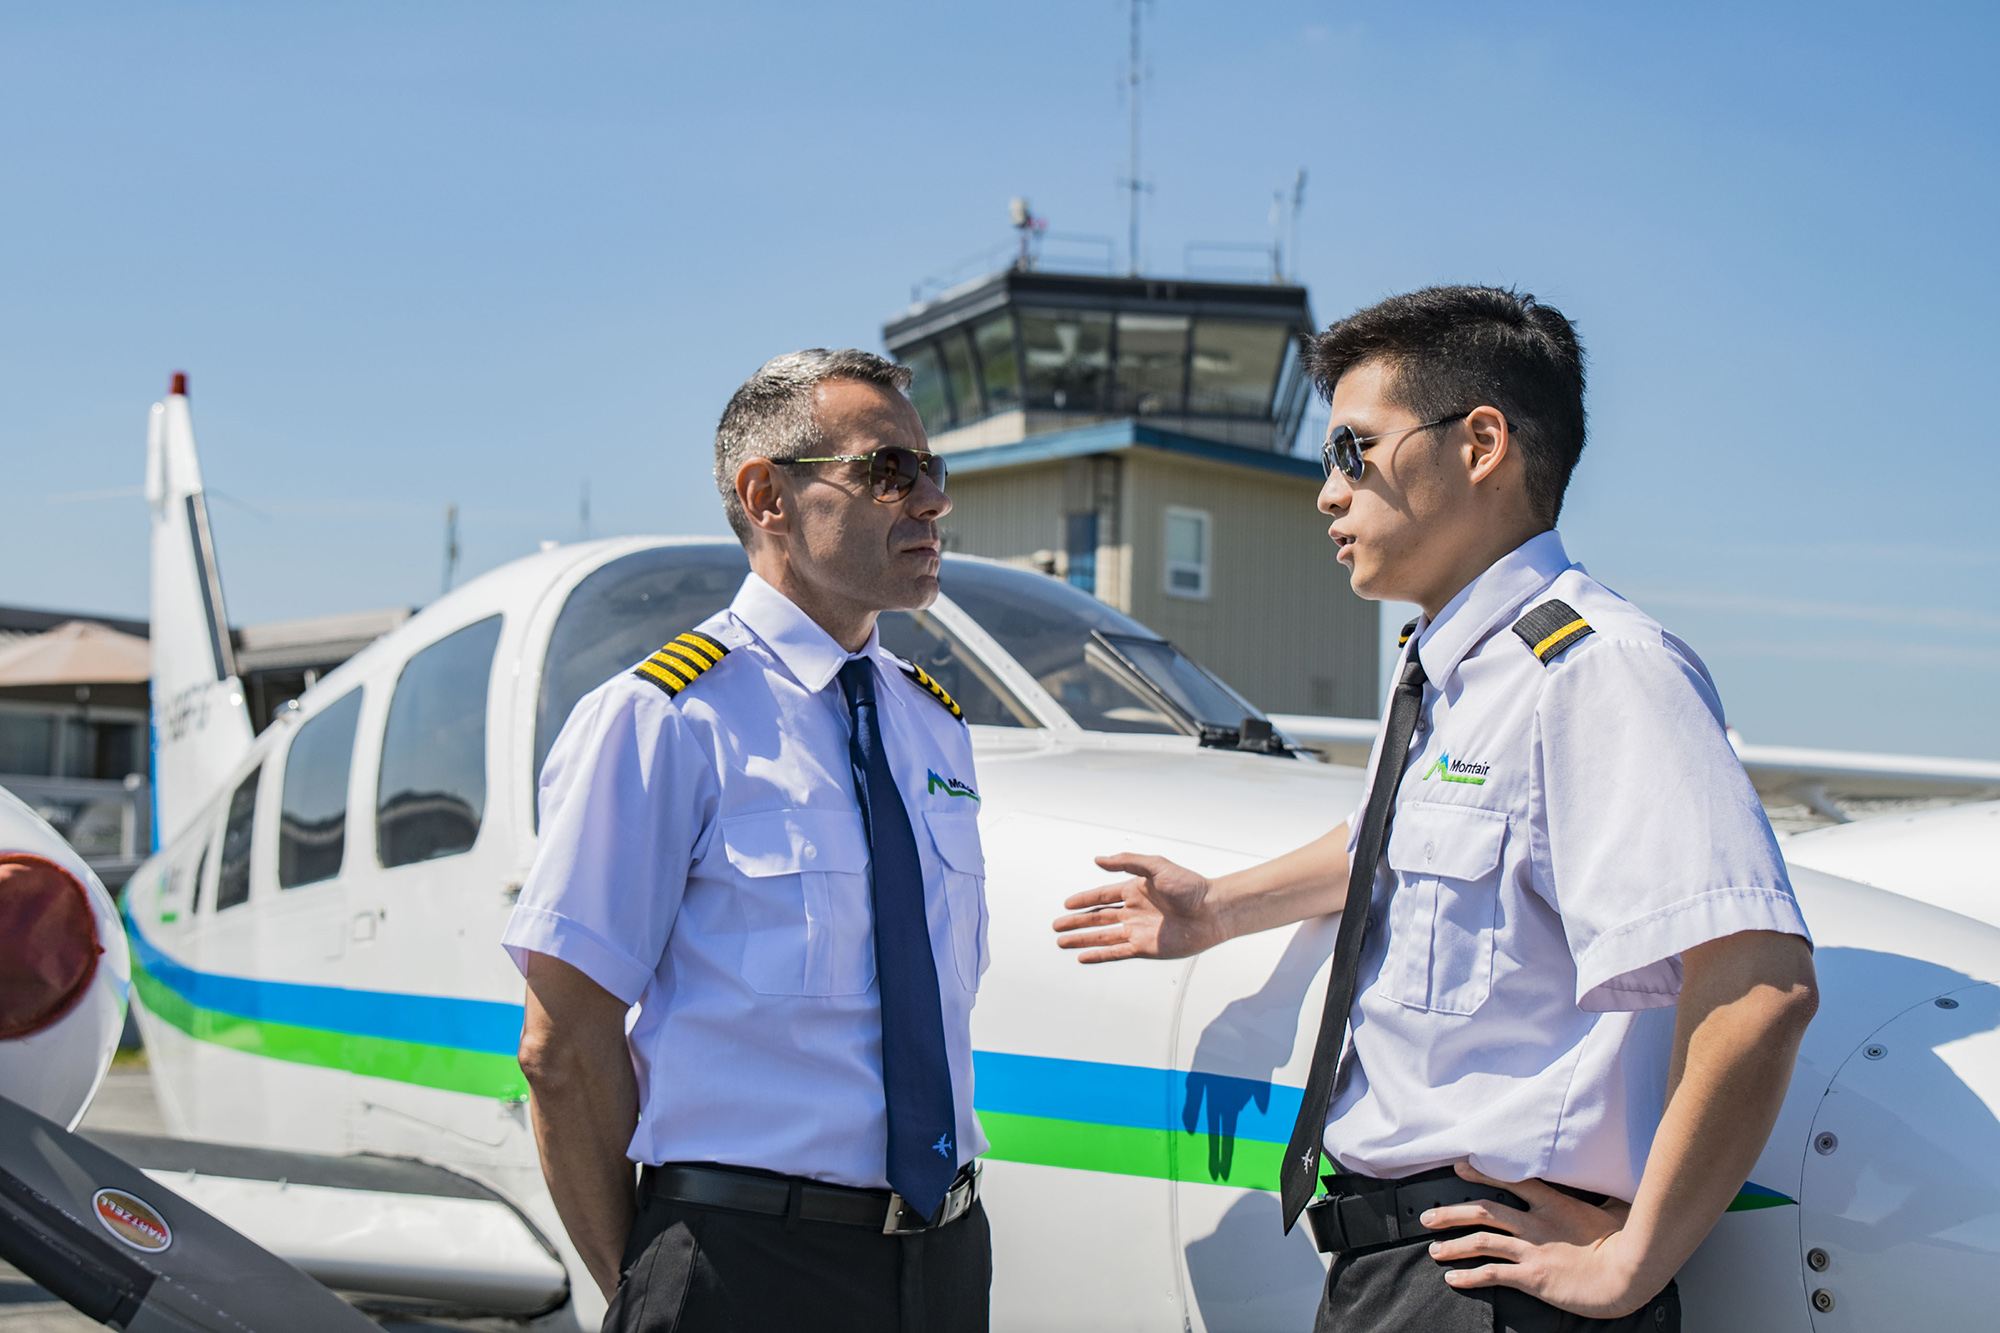 Flight instructor with air cadet